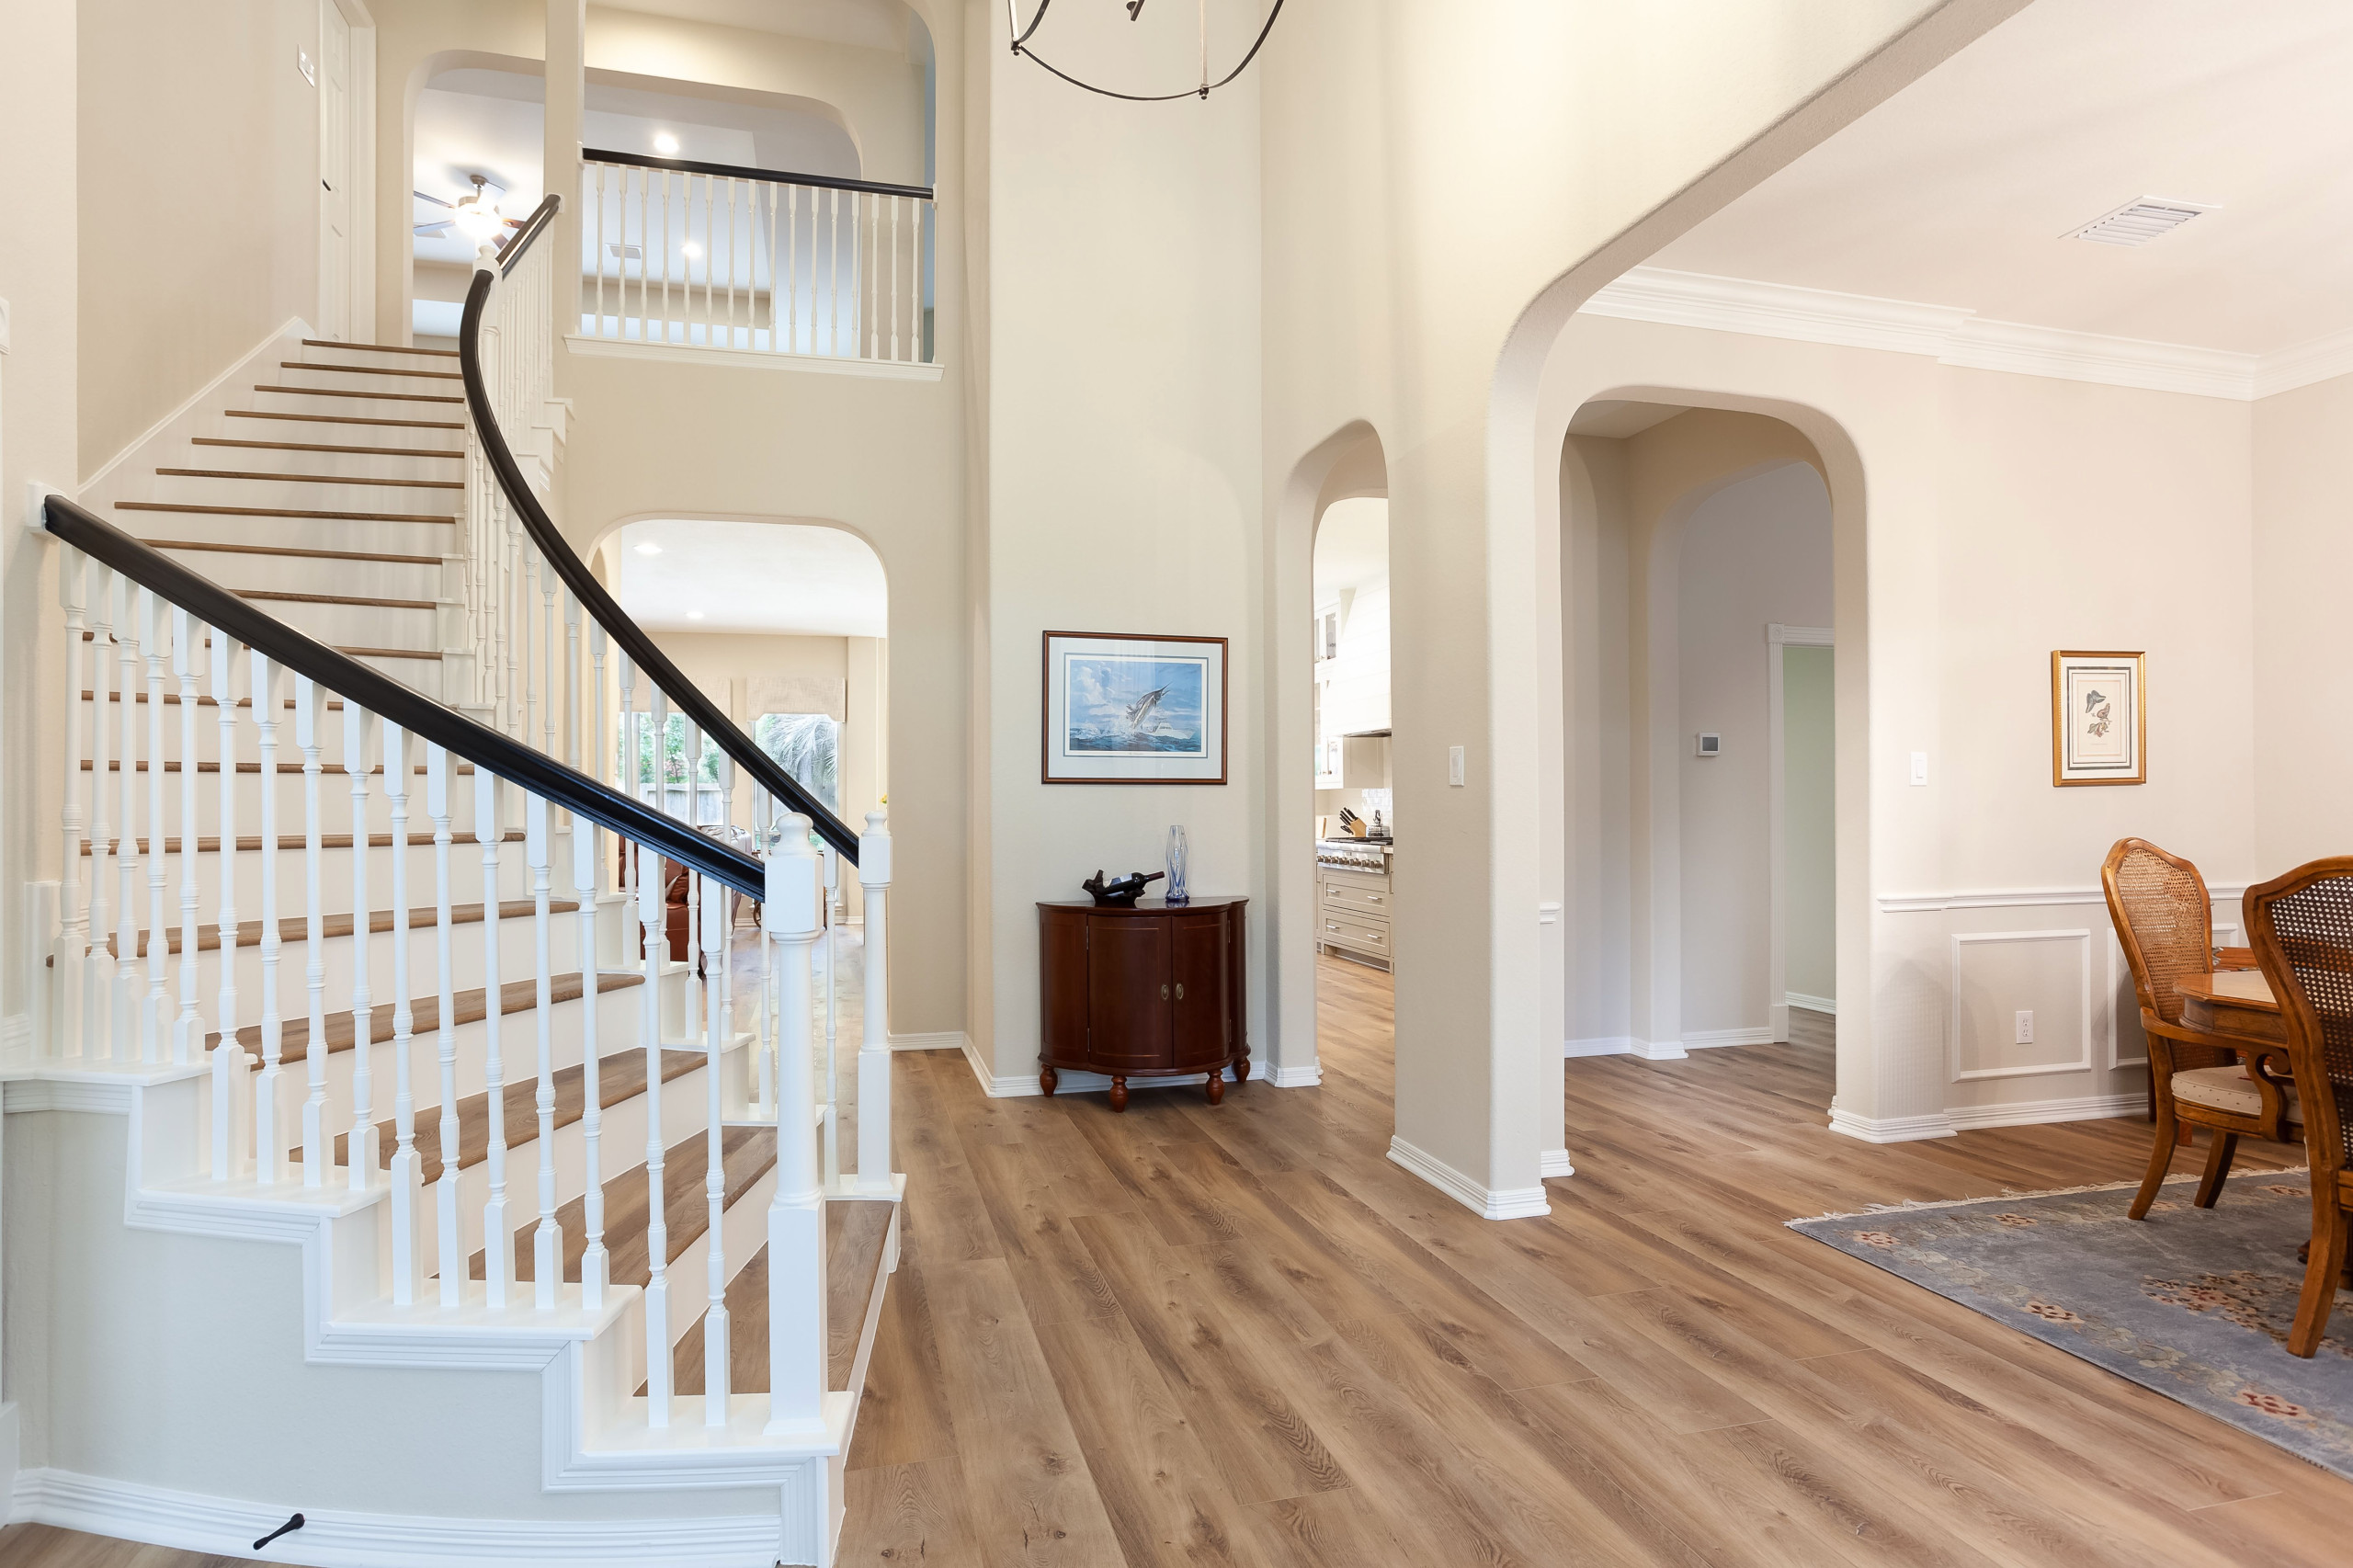 Total 2 story home interior makeover